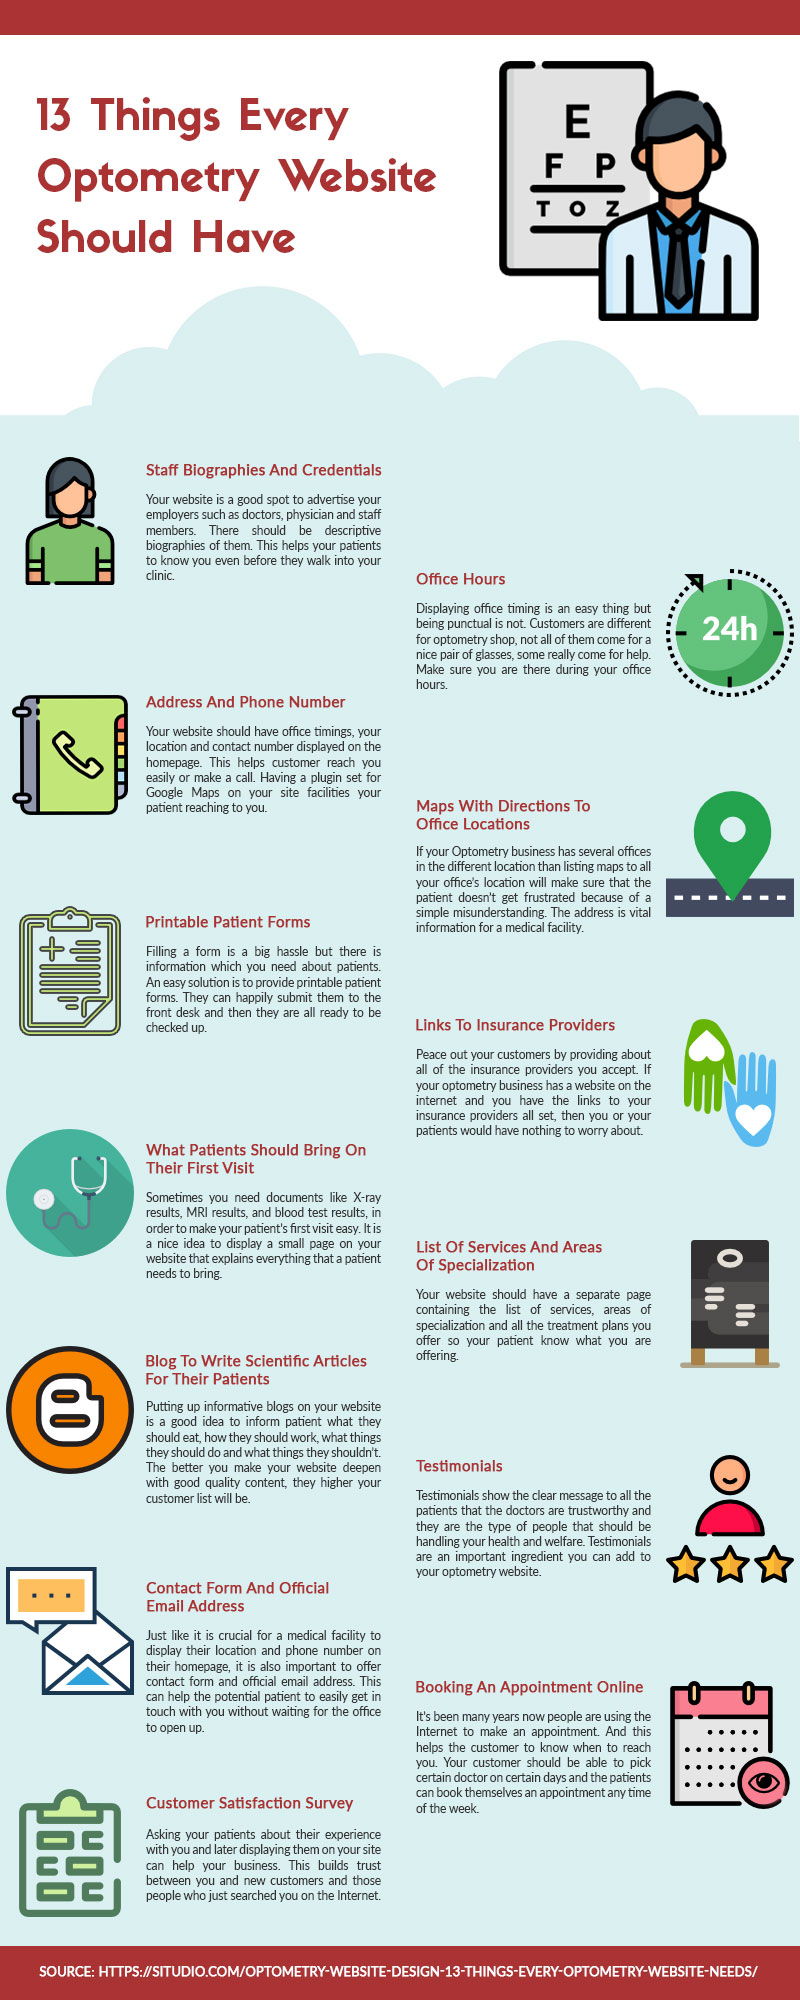 infographic-13-things-optometry-websites-need